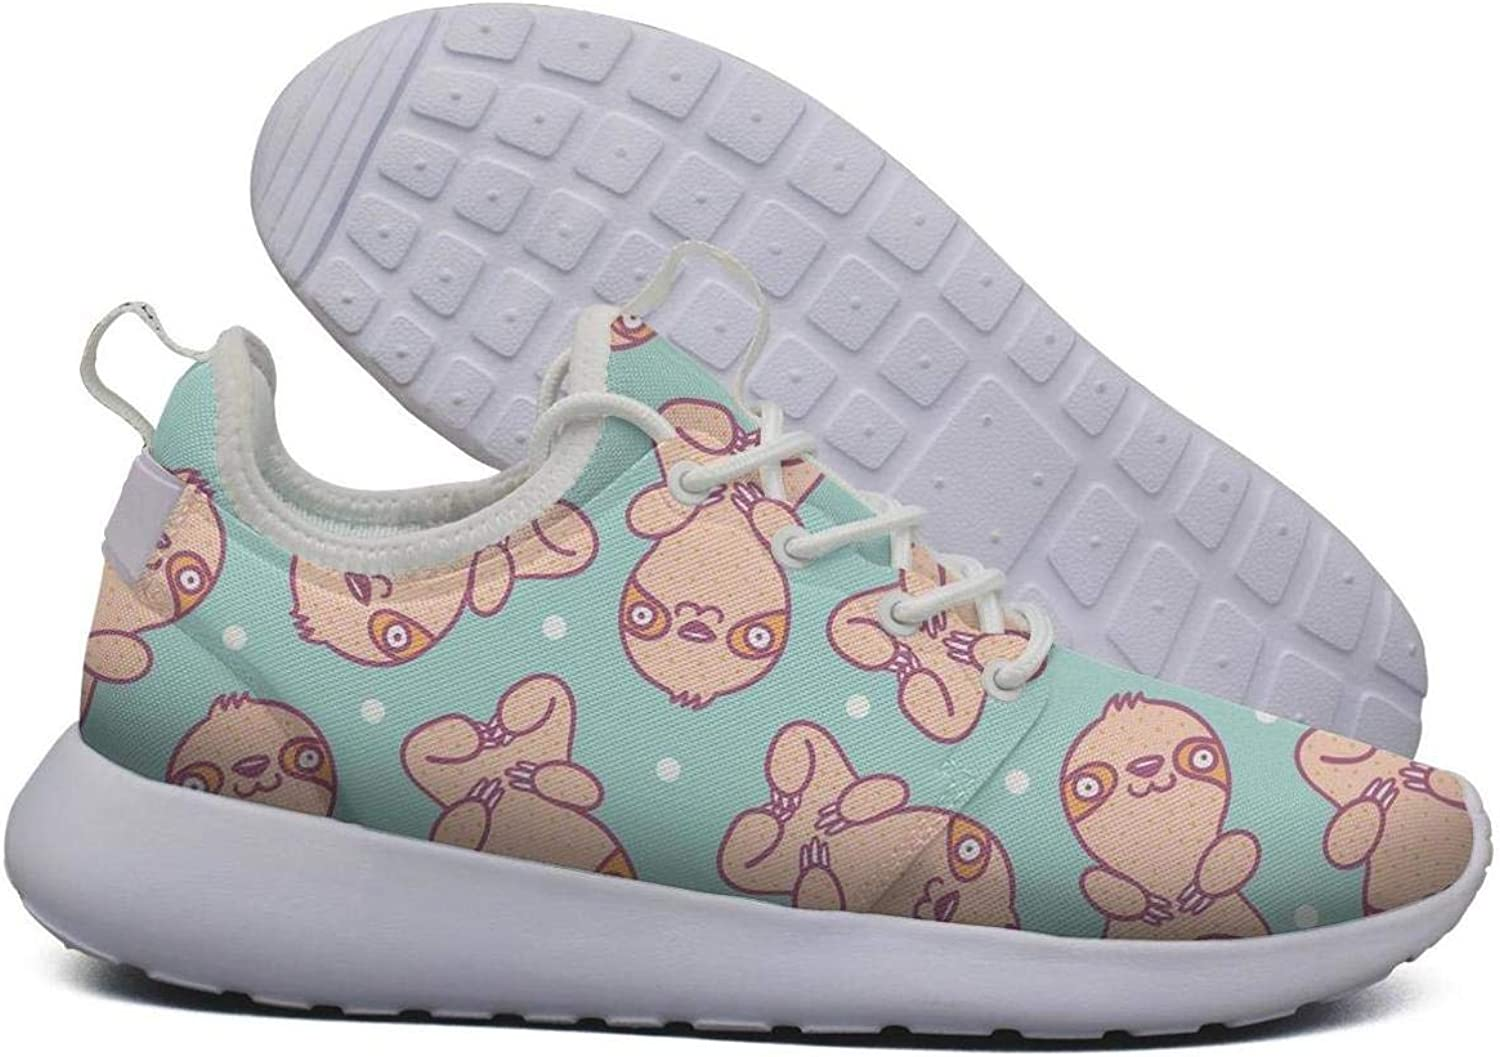 Hoohle Sports Womens Green Sloth with dots Flex Mesh Roshe 2 Lightweight Casual Cross-Trainer shoes